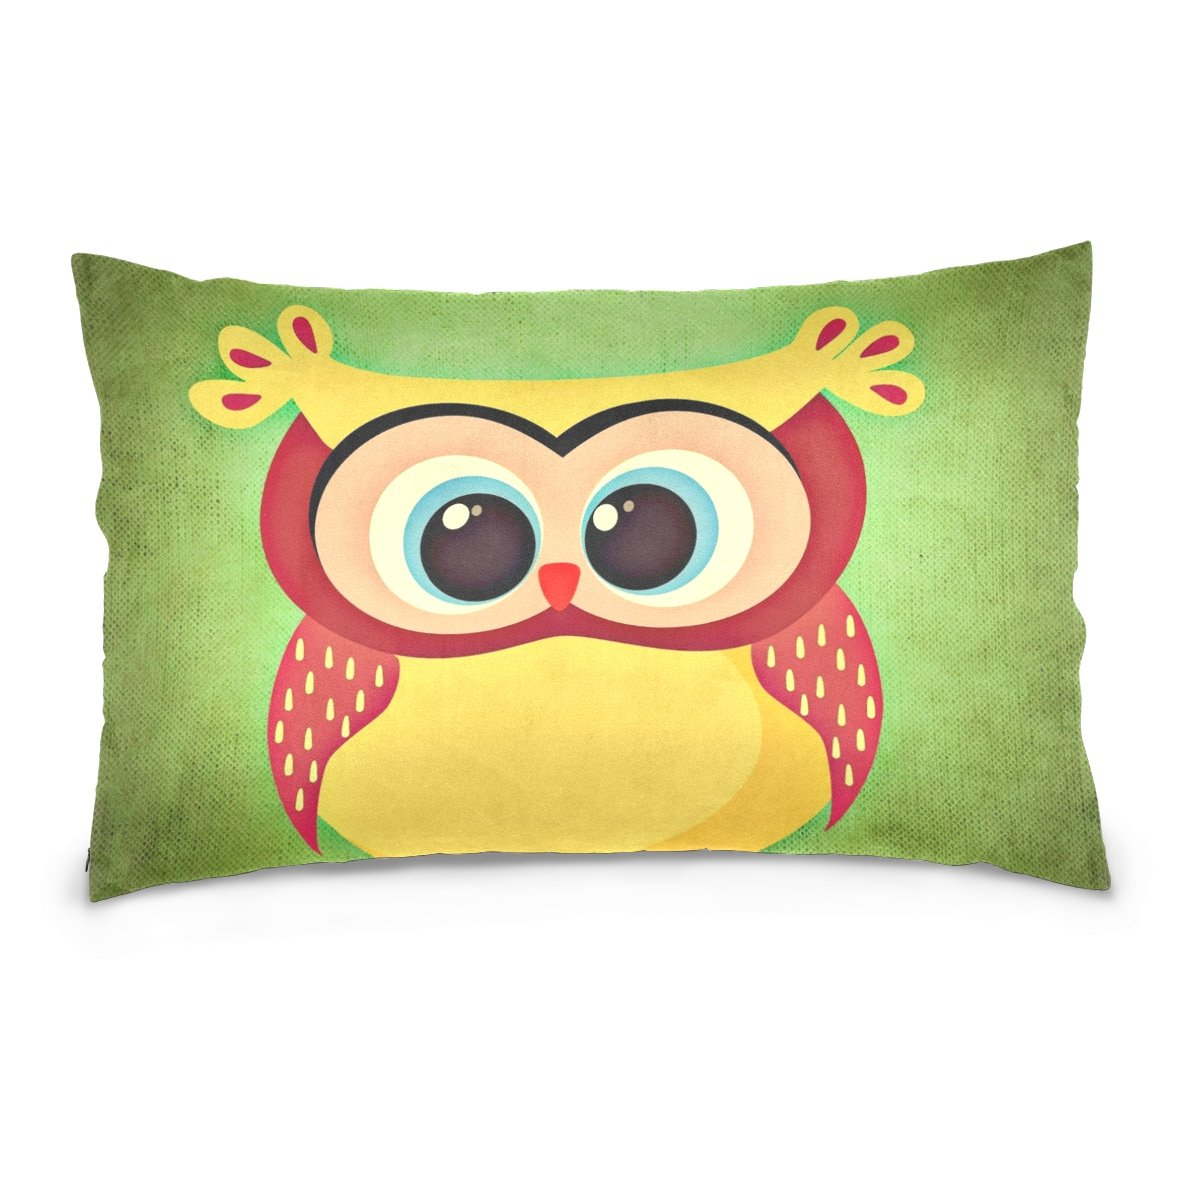 THENAHOME Pillow Covers Pillow Protectors Bed Bug Dust Mite Resistant Standard Pillow Cases Cotton Sateen Allergy Proof Soft Quality Covers with Animal Owl for Bedding